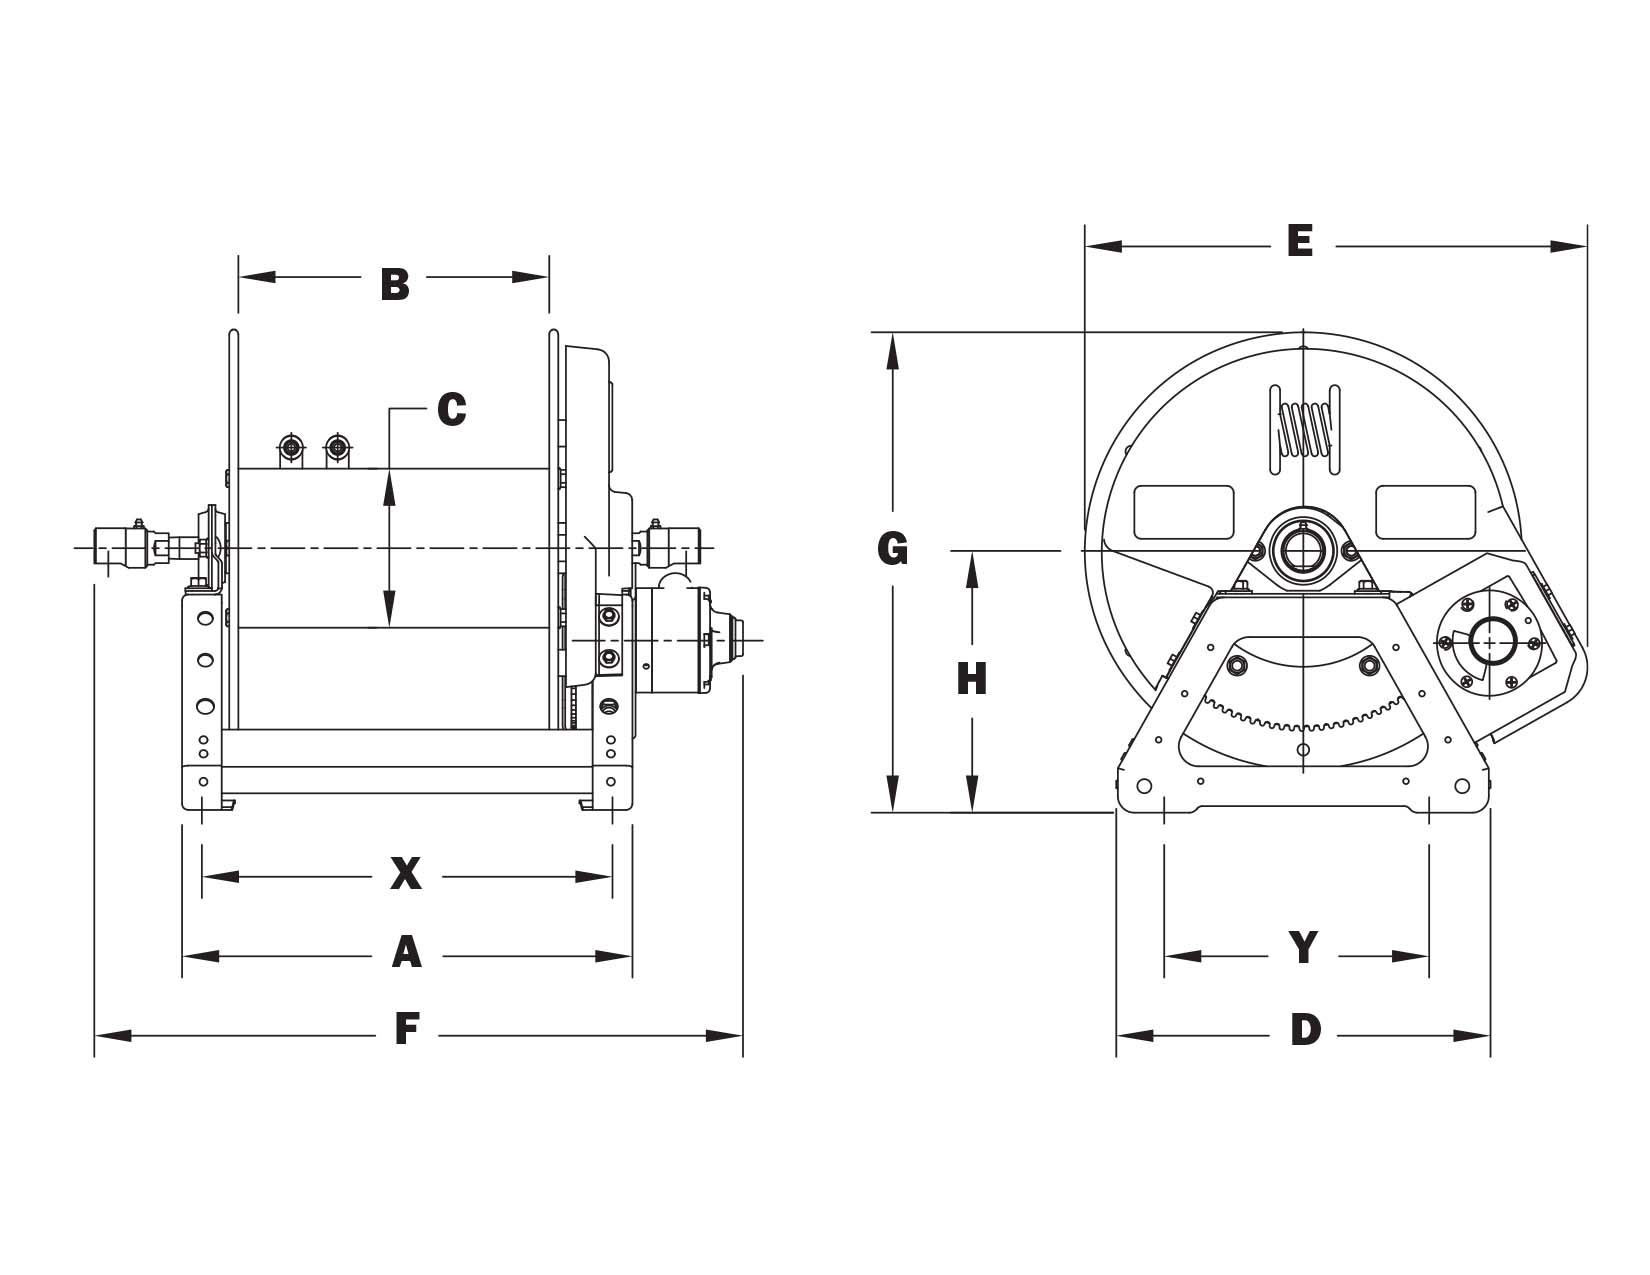 2400 Schematic_1492178147 2400 series hannay reels official site hannay reel wiring diagram at panicattacktreatment.co